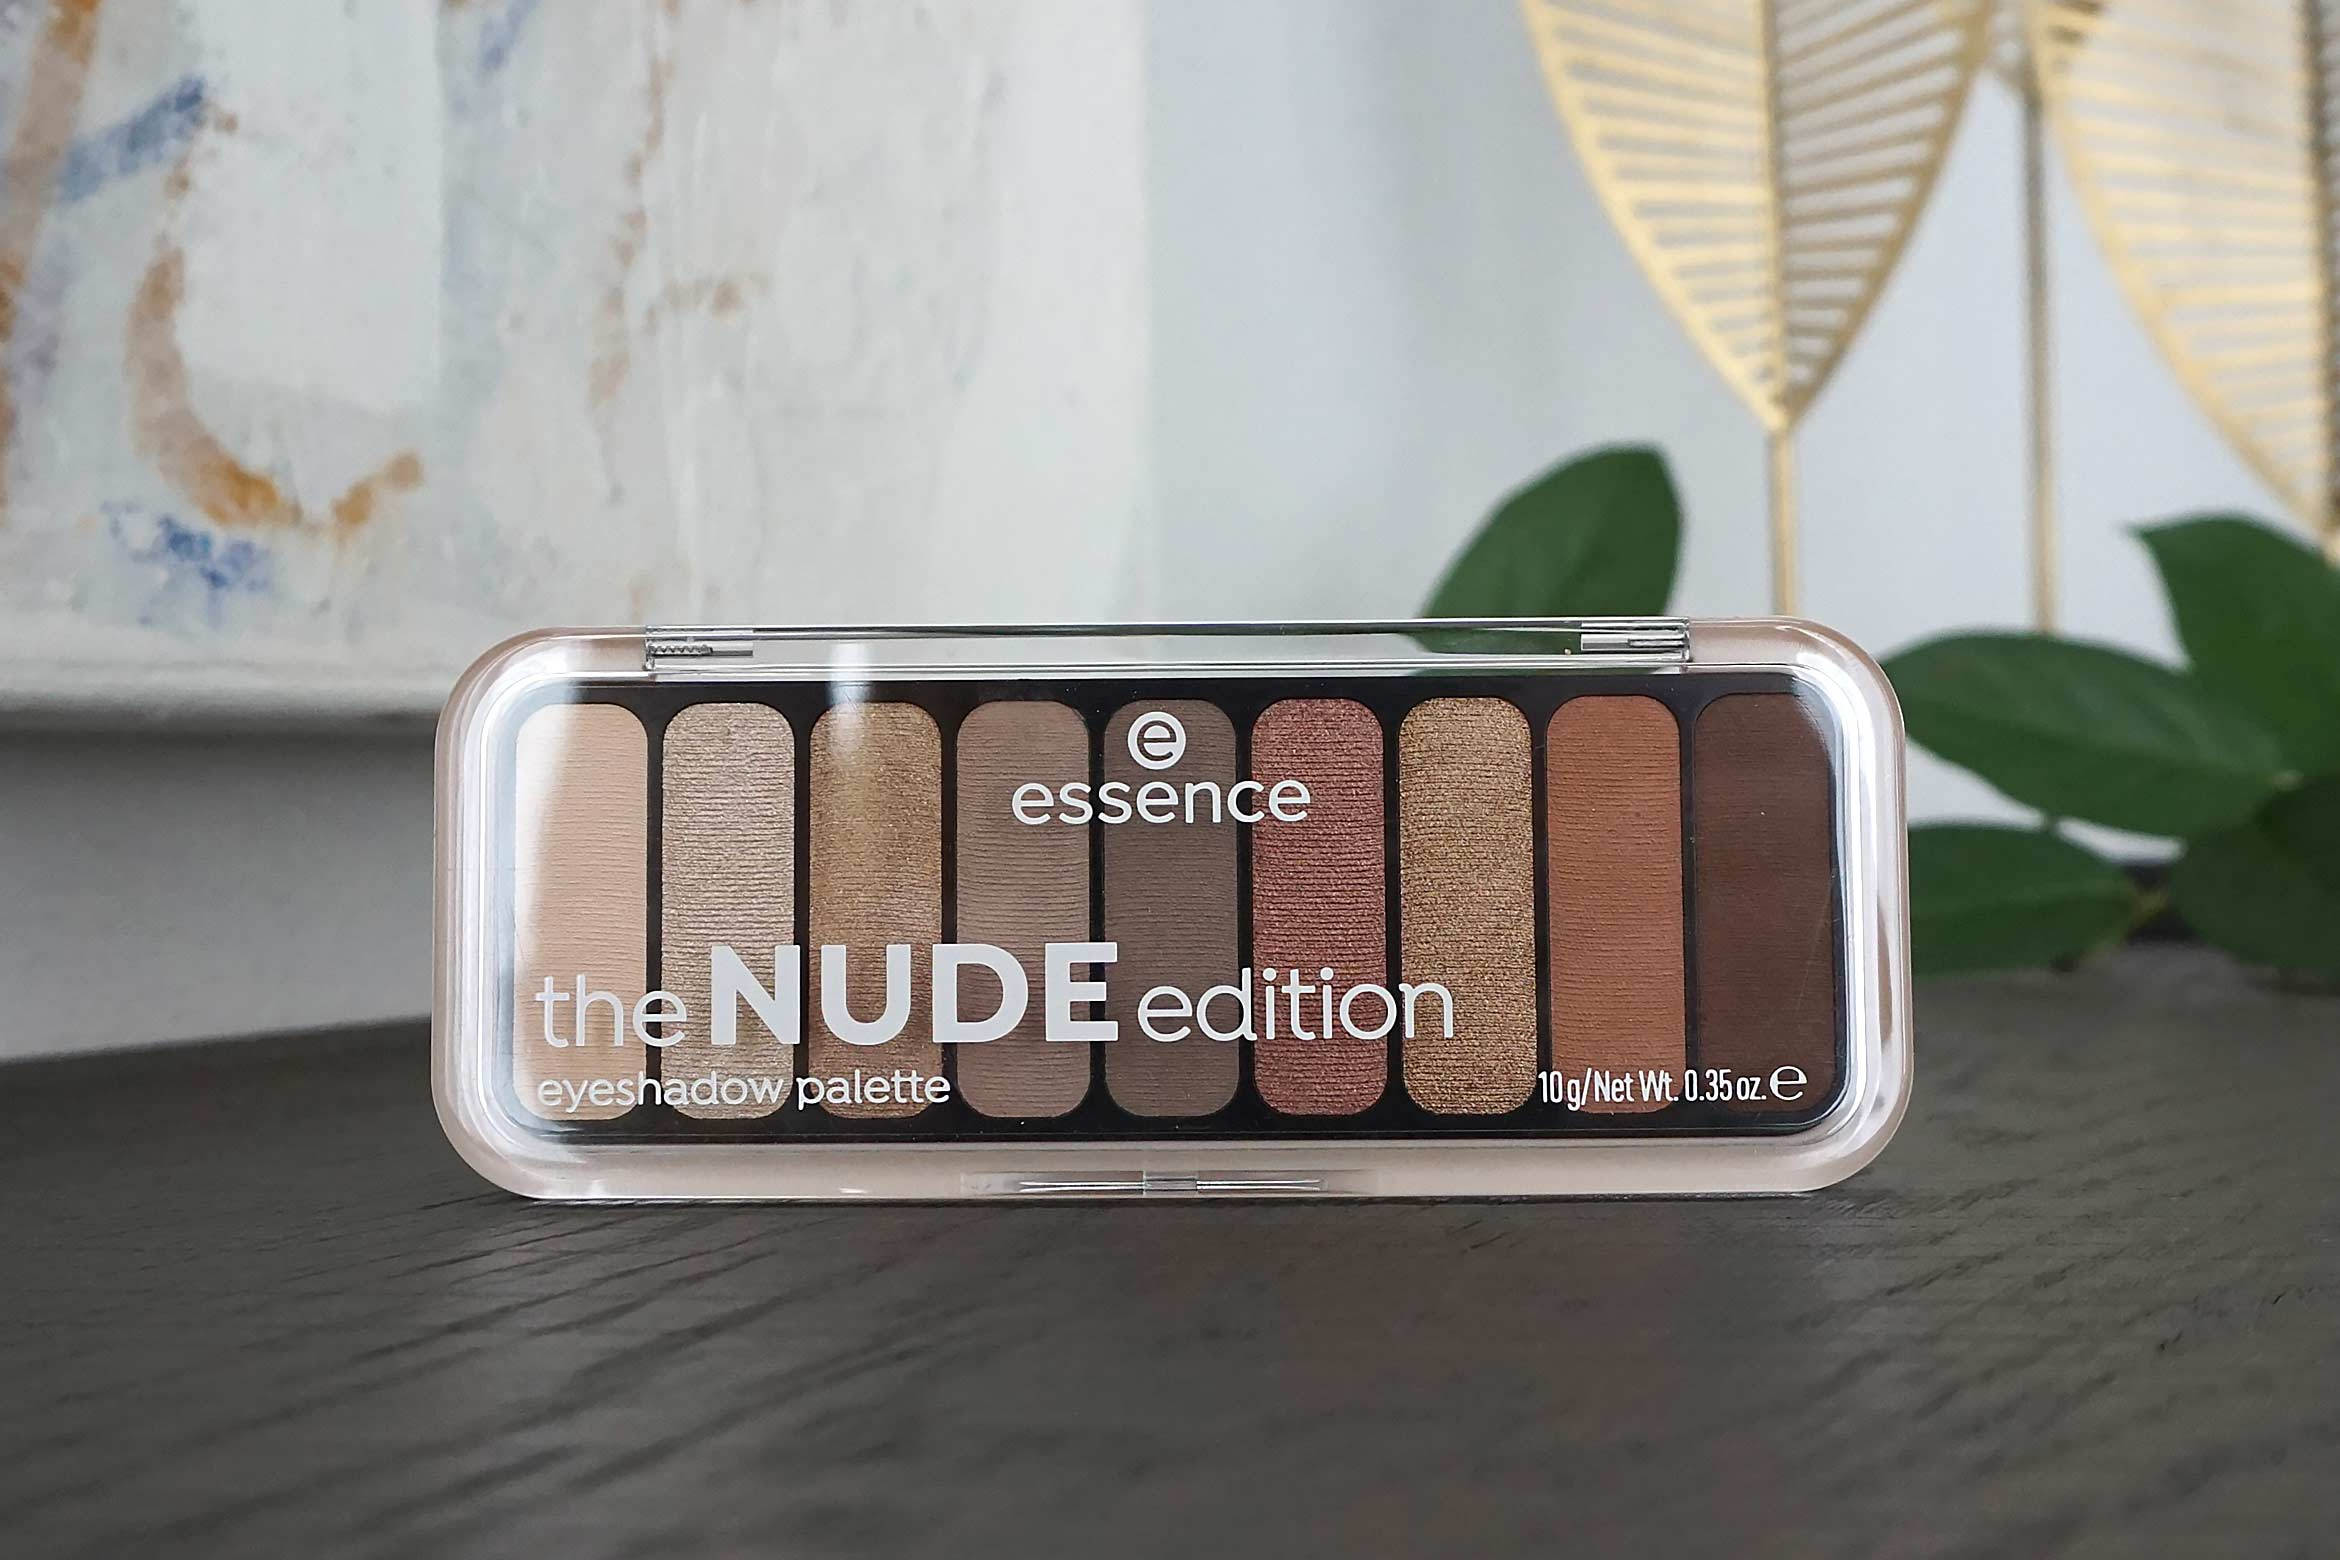 essence the nude edition eyeshadow palette review